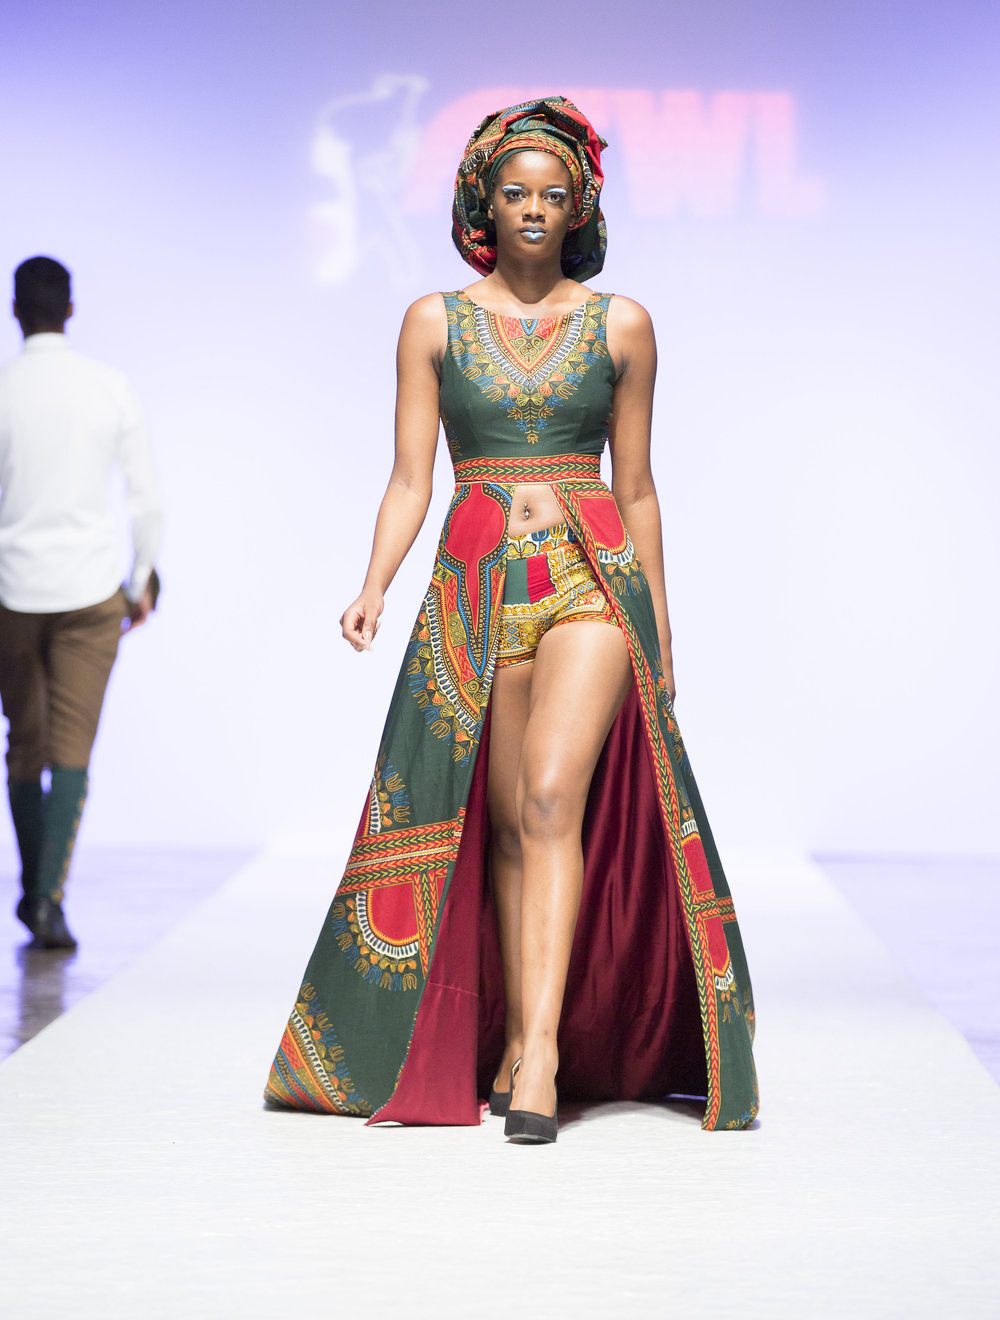 African Fashion Today-Joanna Mitroi Photography 0874- lores.jpg